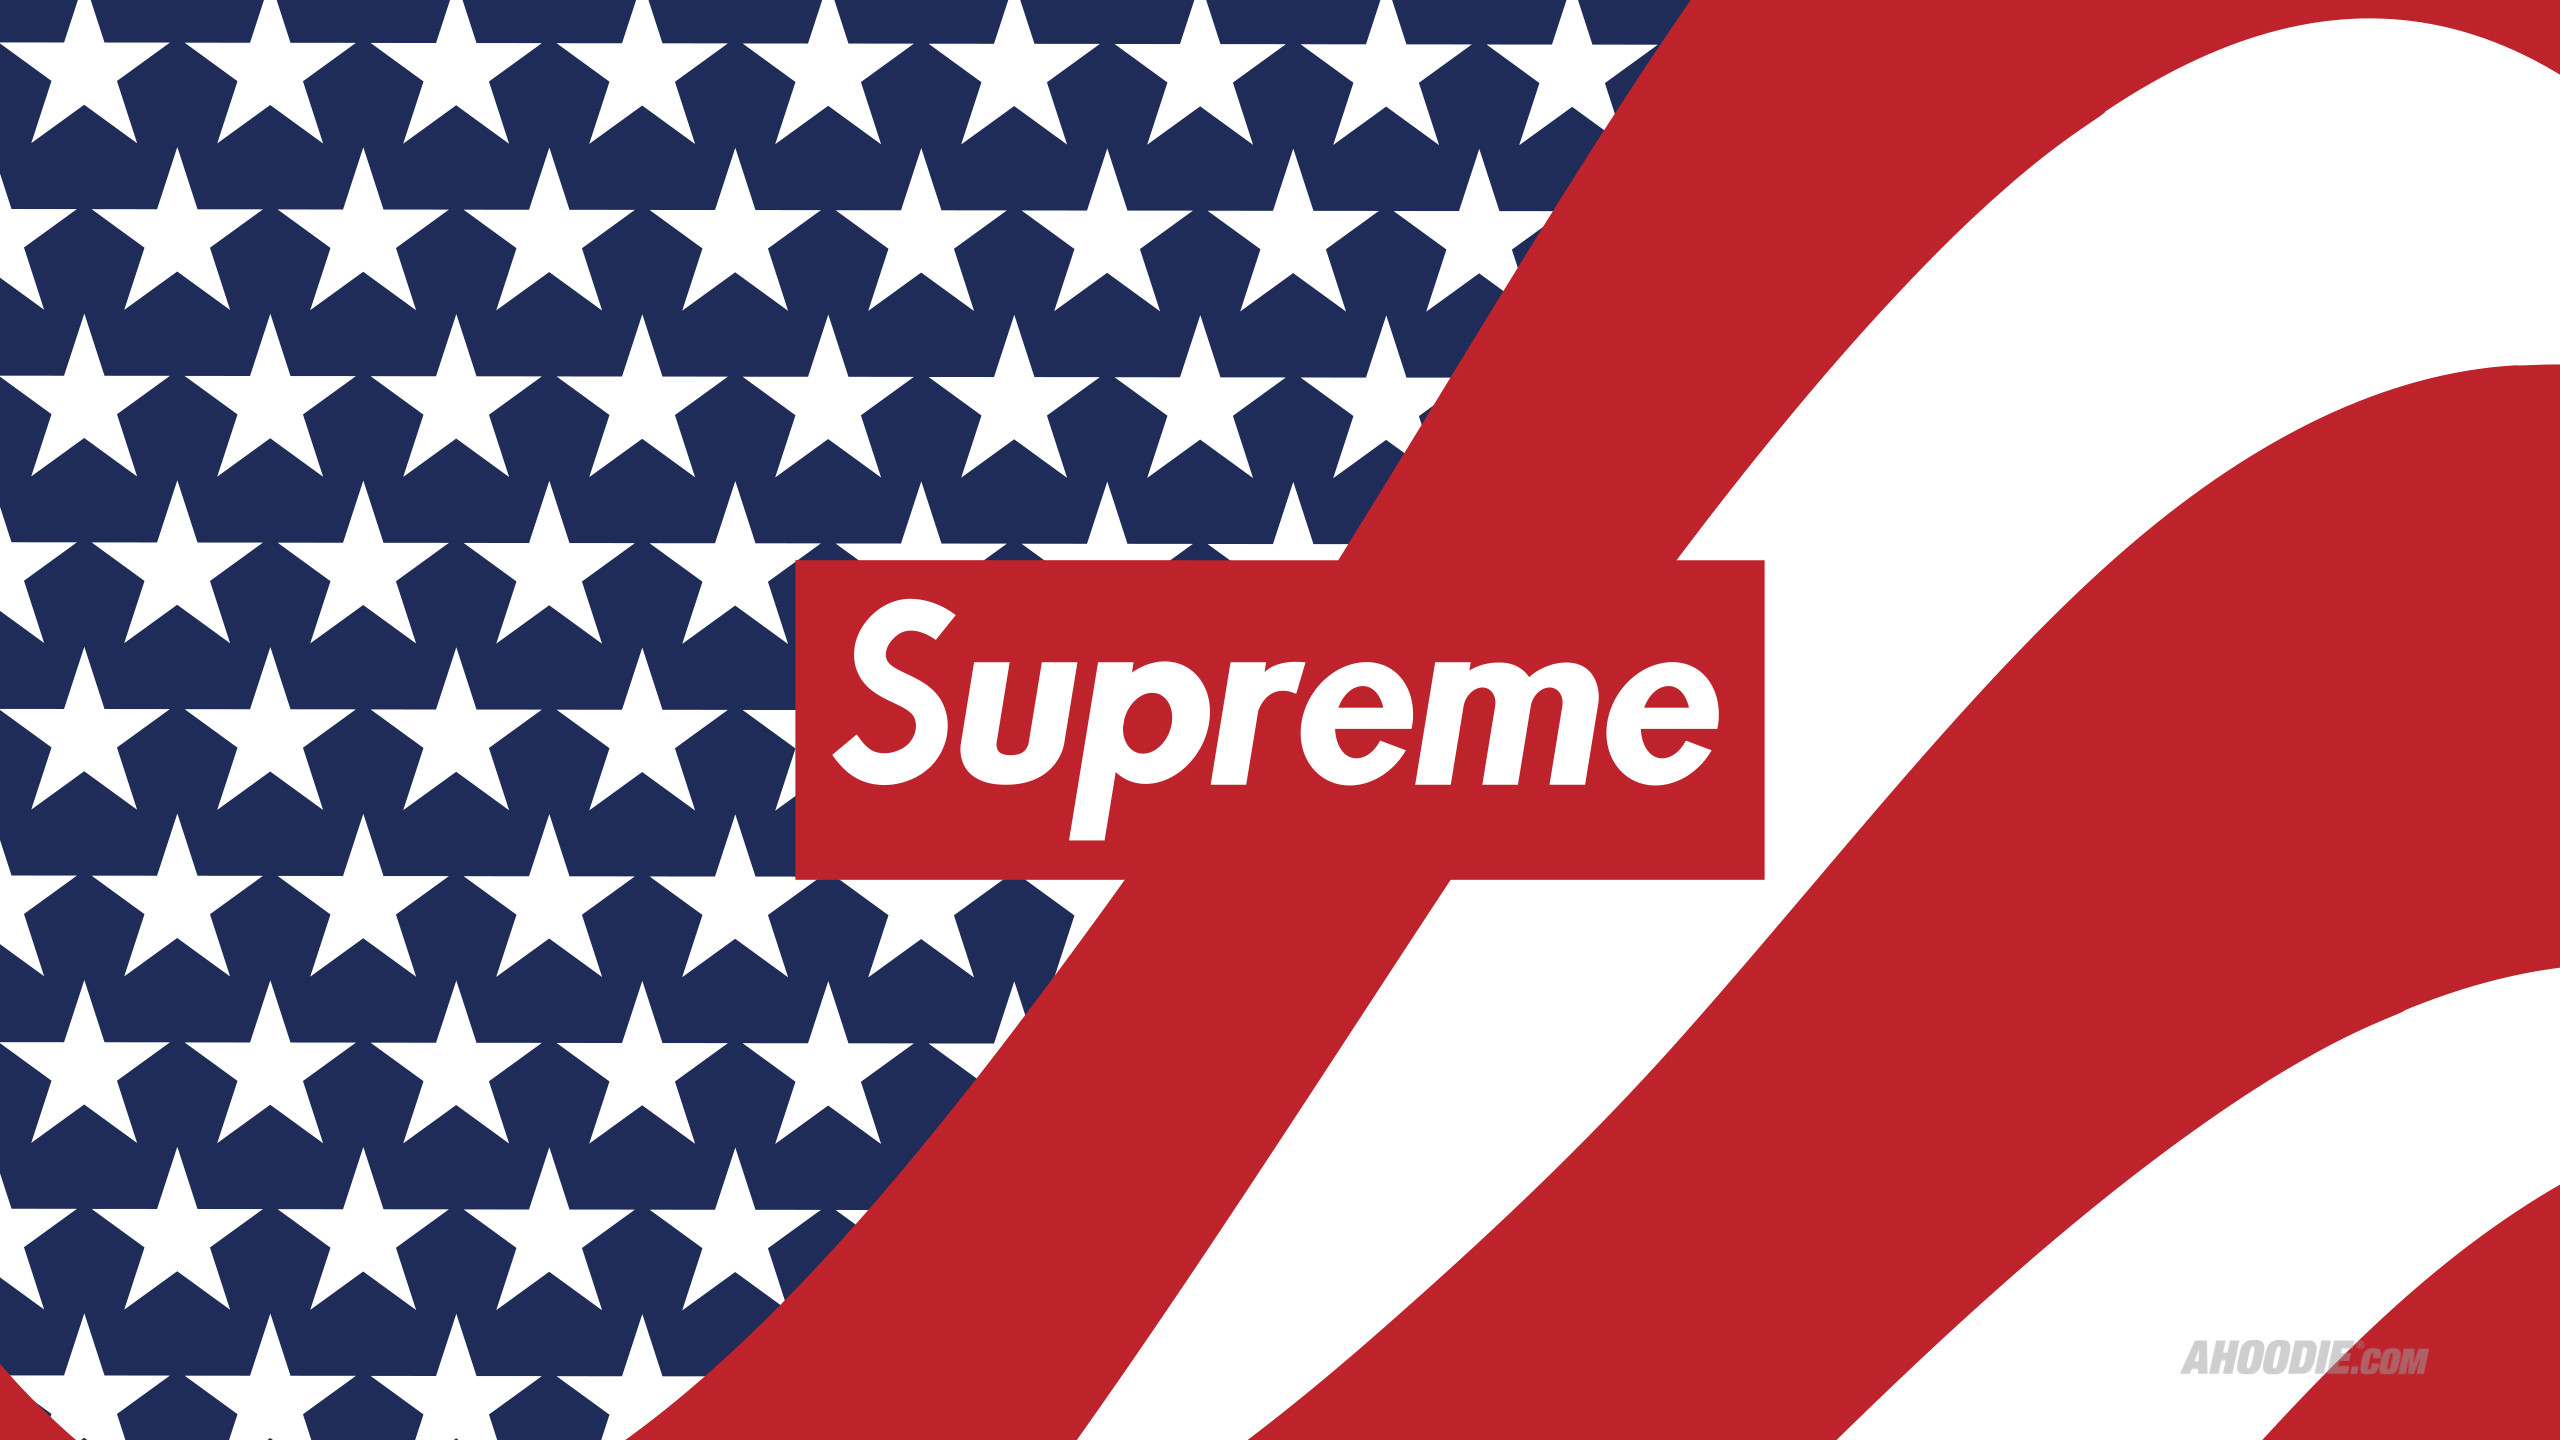 Supreme Wallpaper 73 images 2560x1440